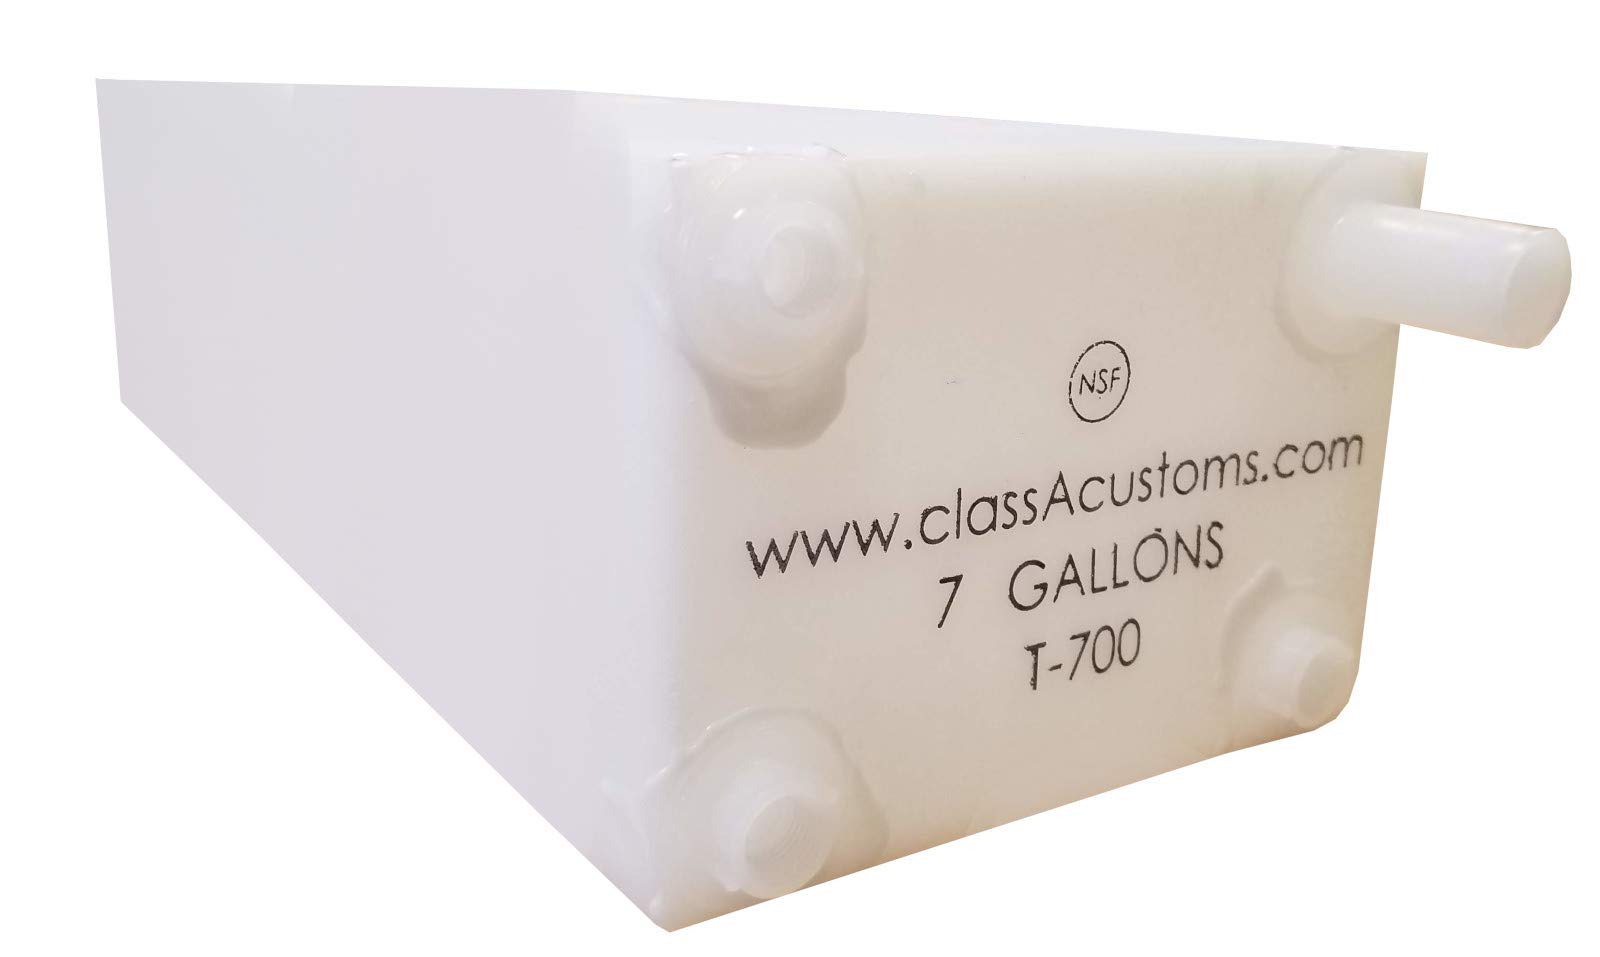 Class A Customs Spouted 7 Gallon Water Holding Tank T-700-SP